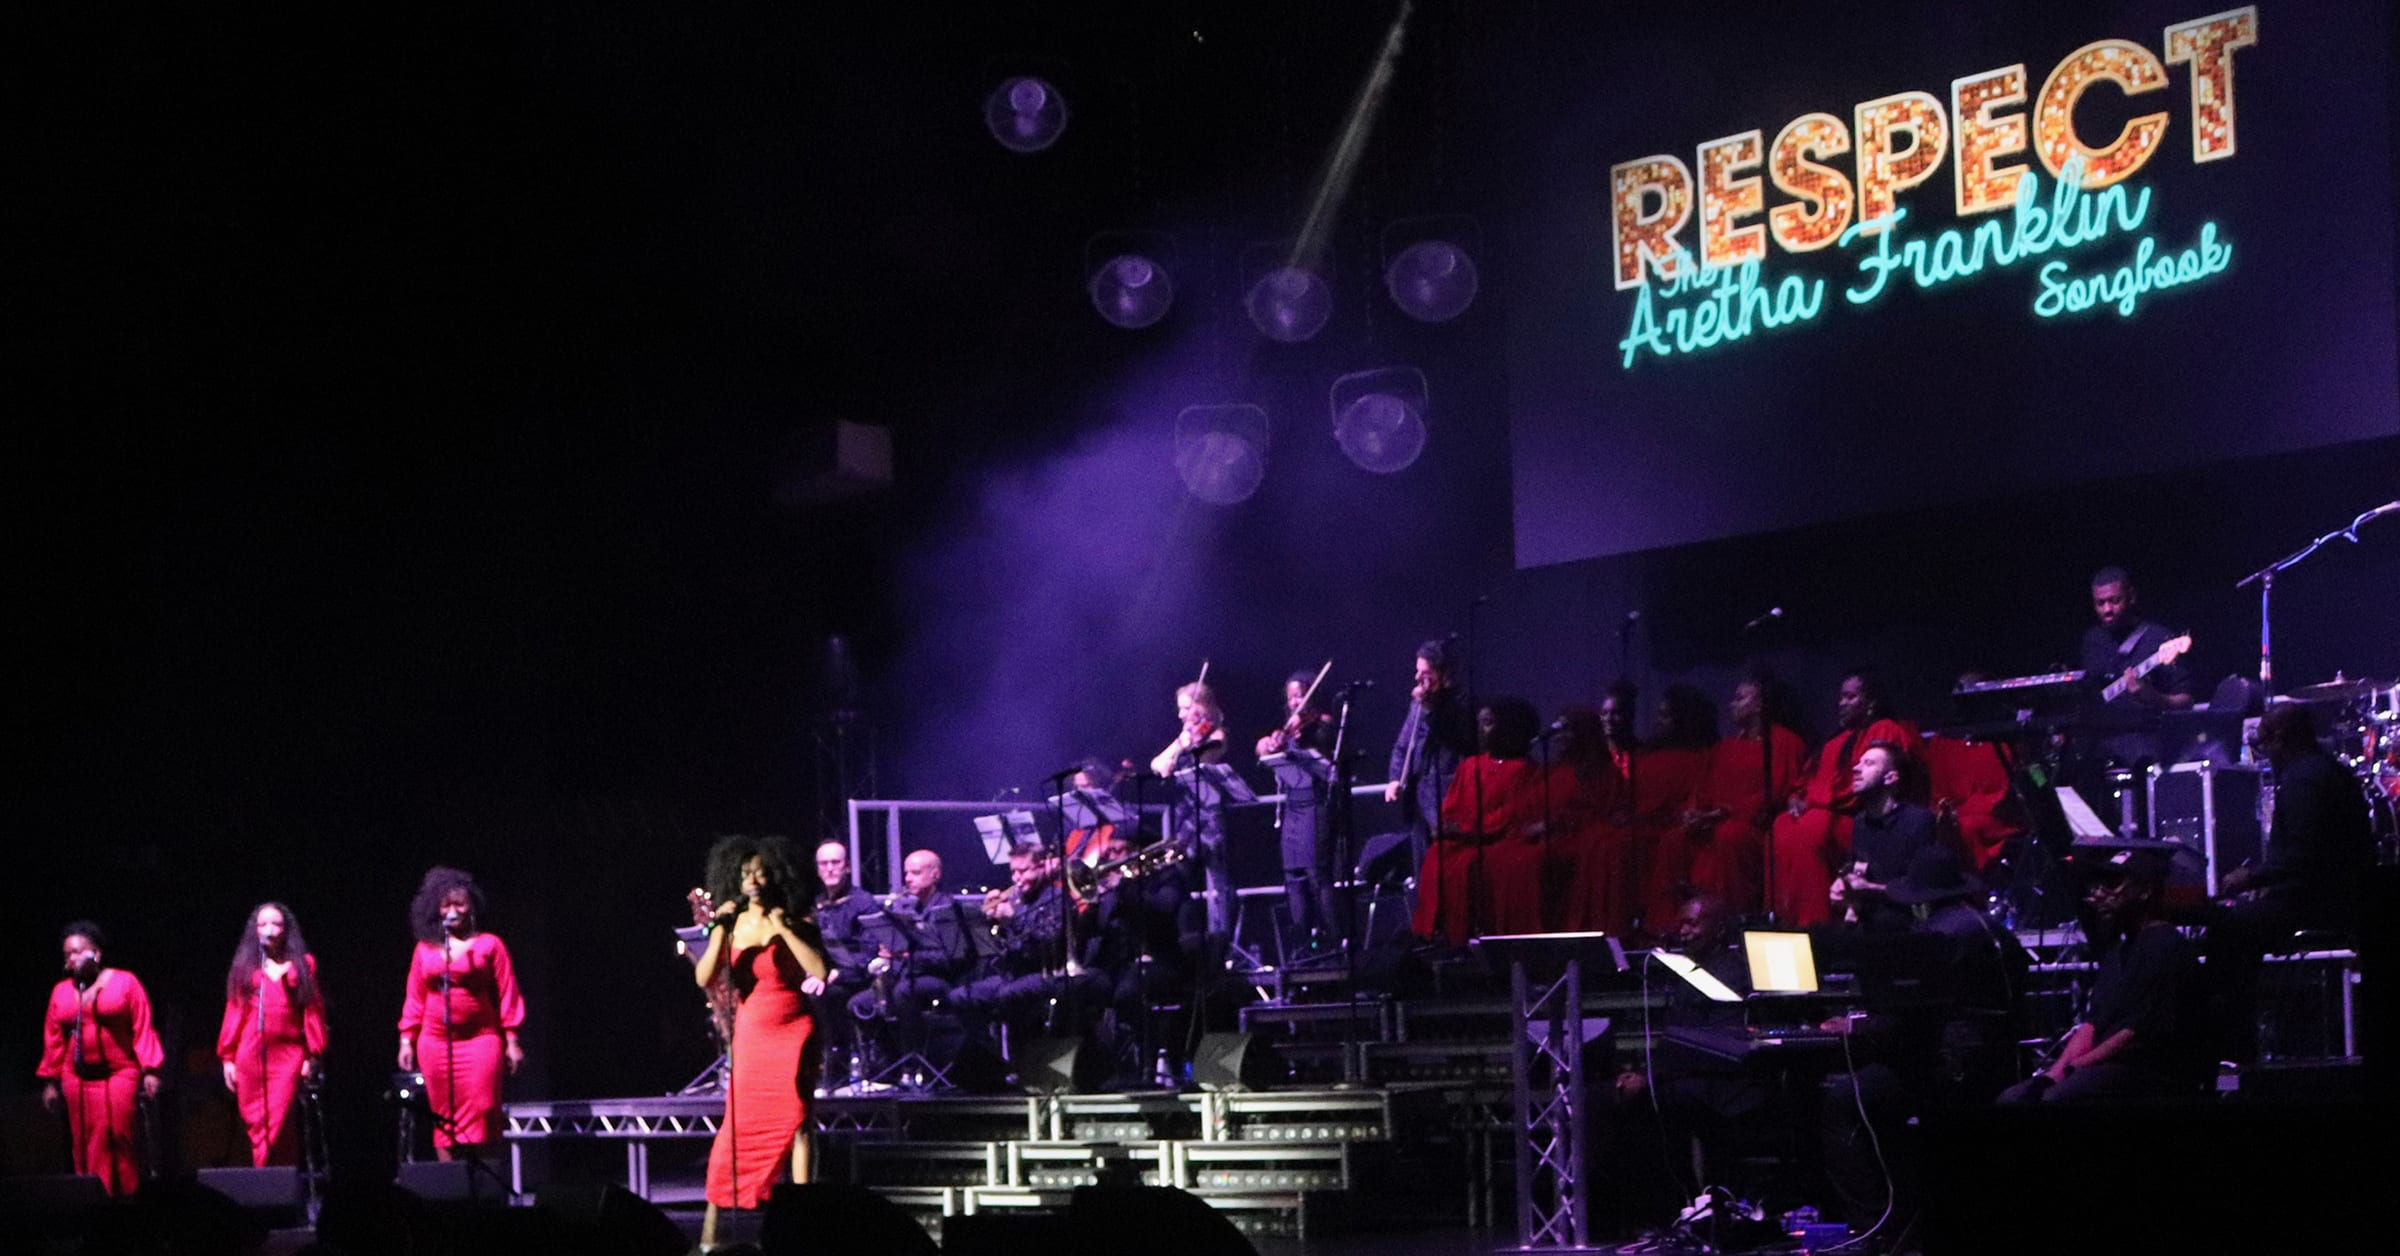 Respect - The Aretha Franklin Songbook header